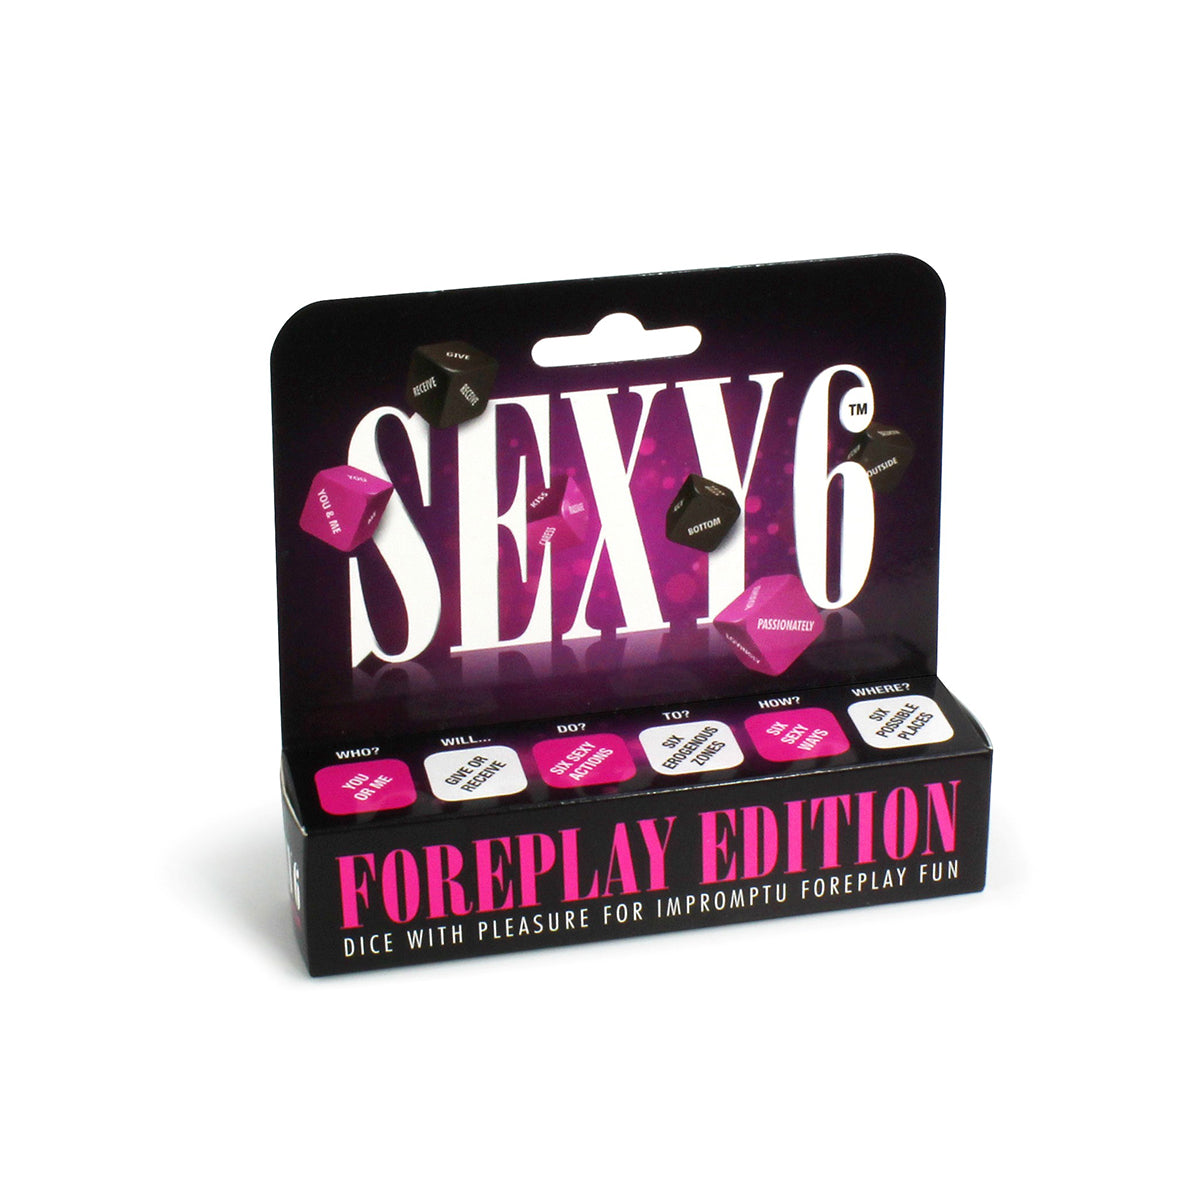 Sexy 6 Dice Game